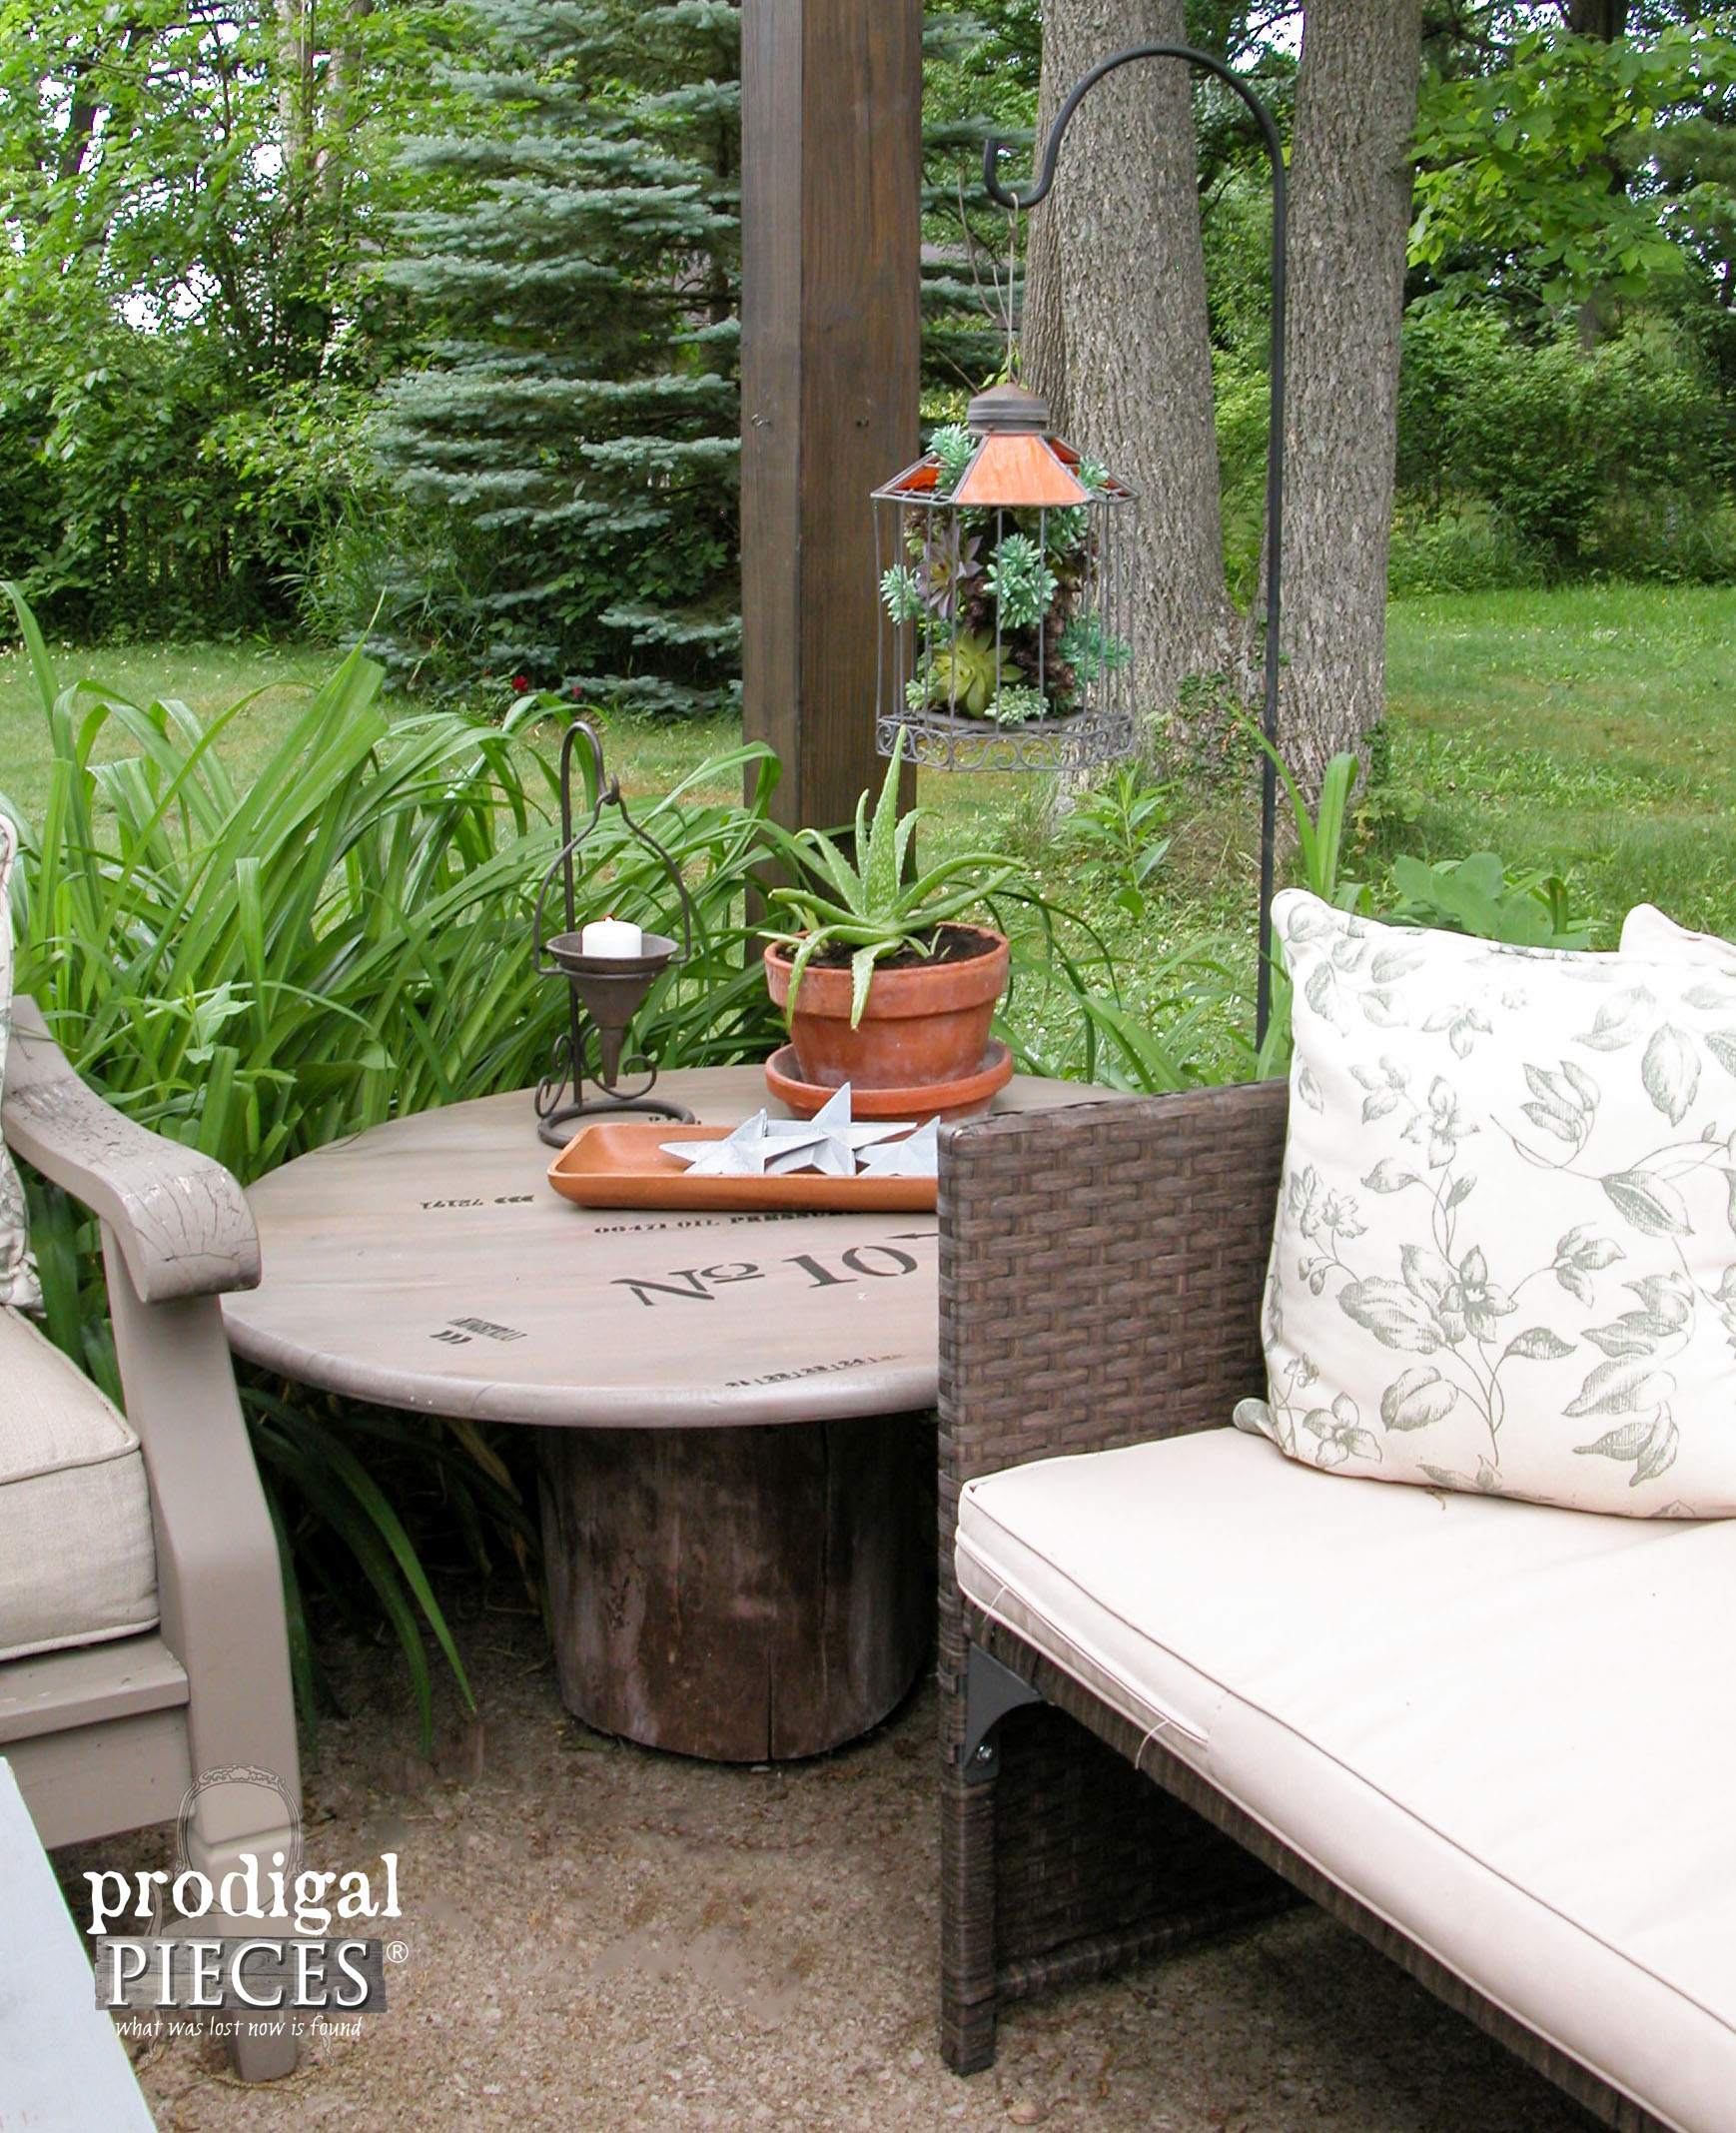 Rustic Patio with Faux Succulent Planter by Prodigal Pieces | www.prodigalpieces.com